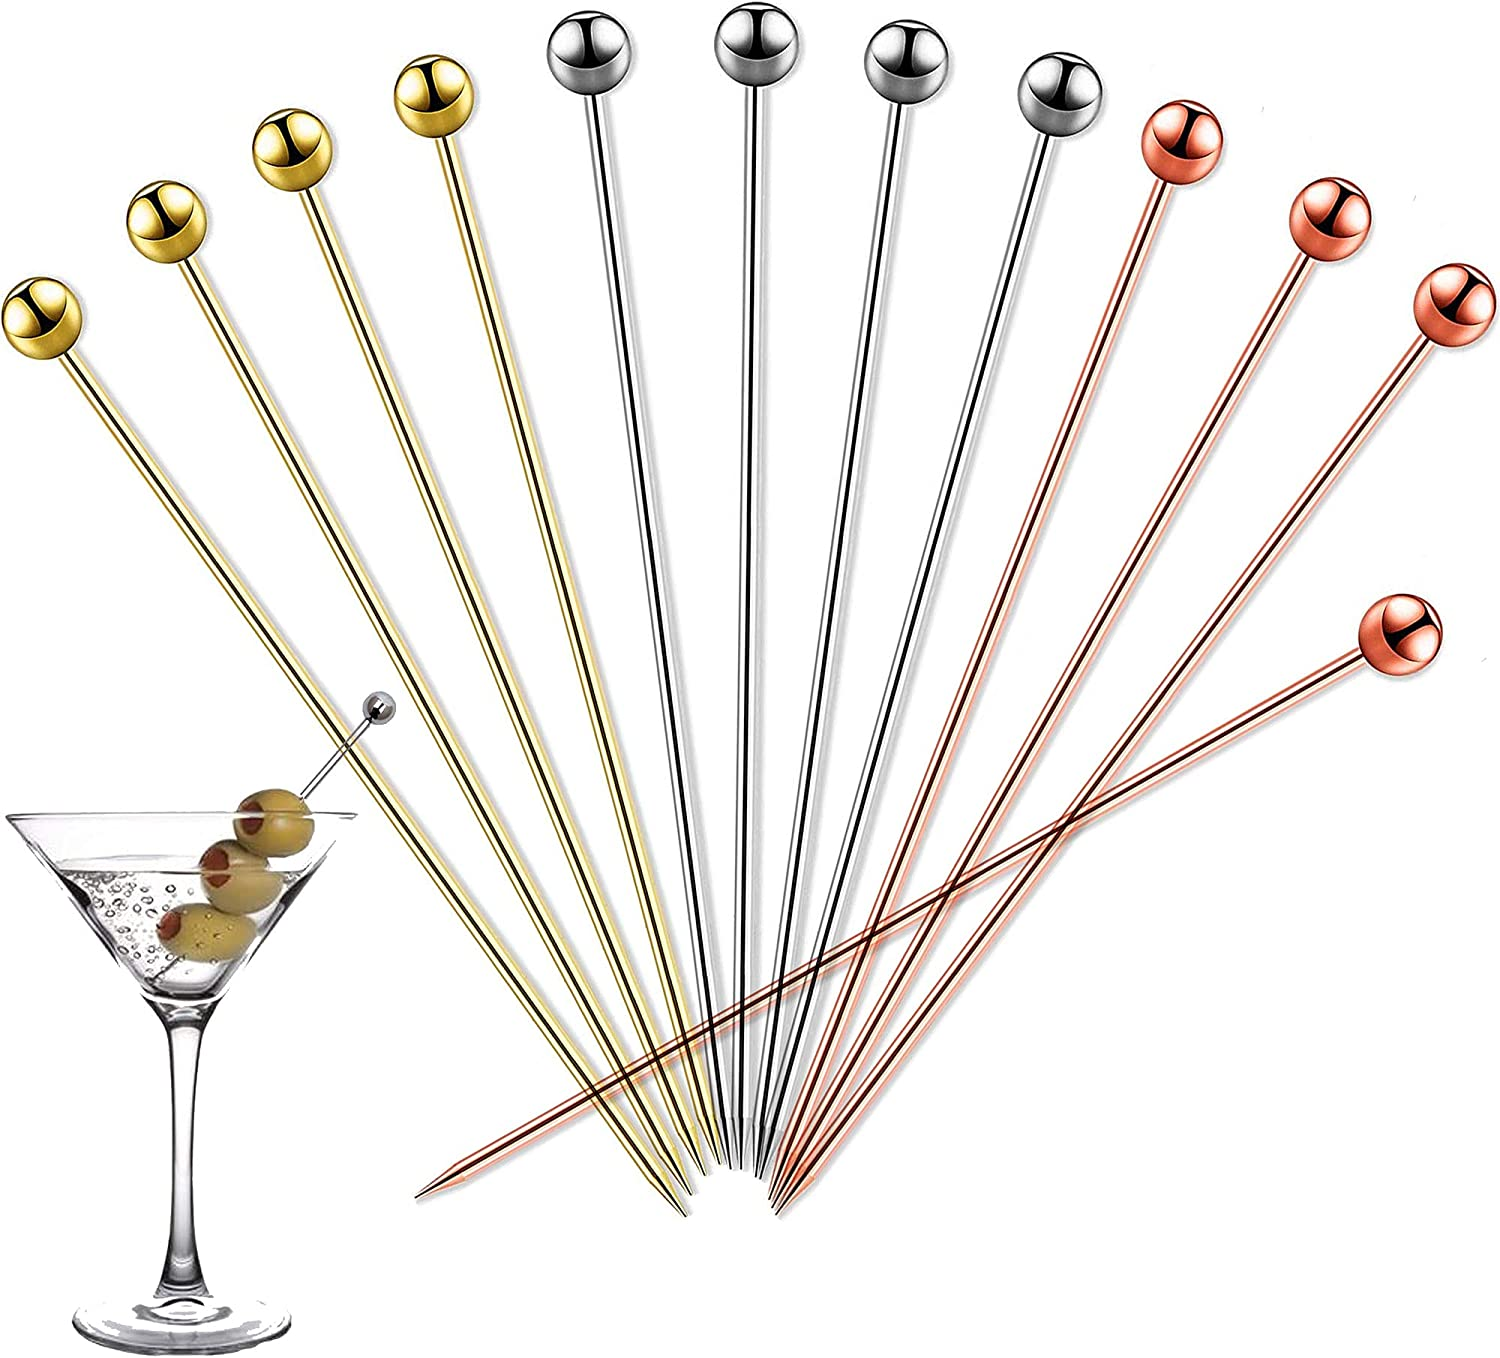 Cocktail Picks 12 PCS Virginia Beach Mall Topics on TV 4.3 Cockt Stainless Inches Steel Reusable